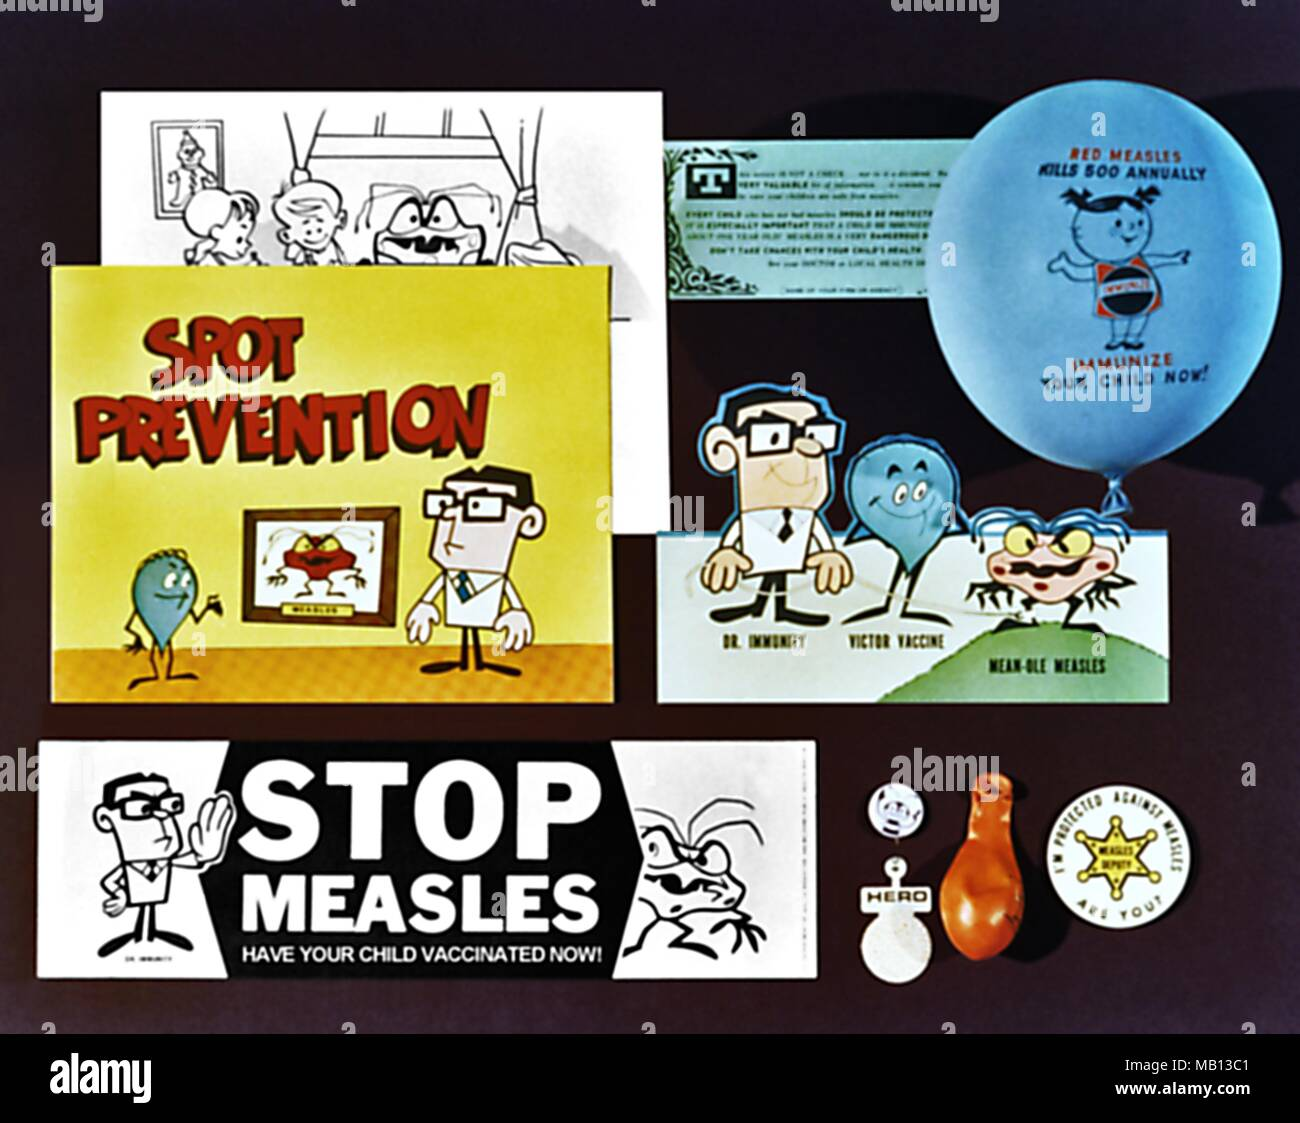 Marketing materials used to promote measles vaccination participation in the U.S. Image courtesy Centers for Disease Control (CDC), 1960. () - Stock Image